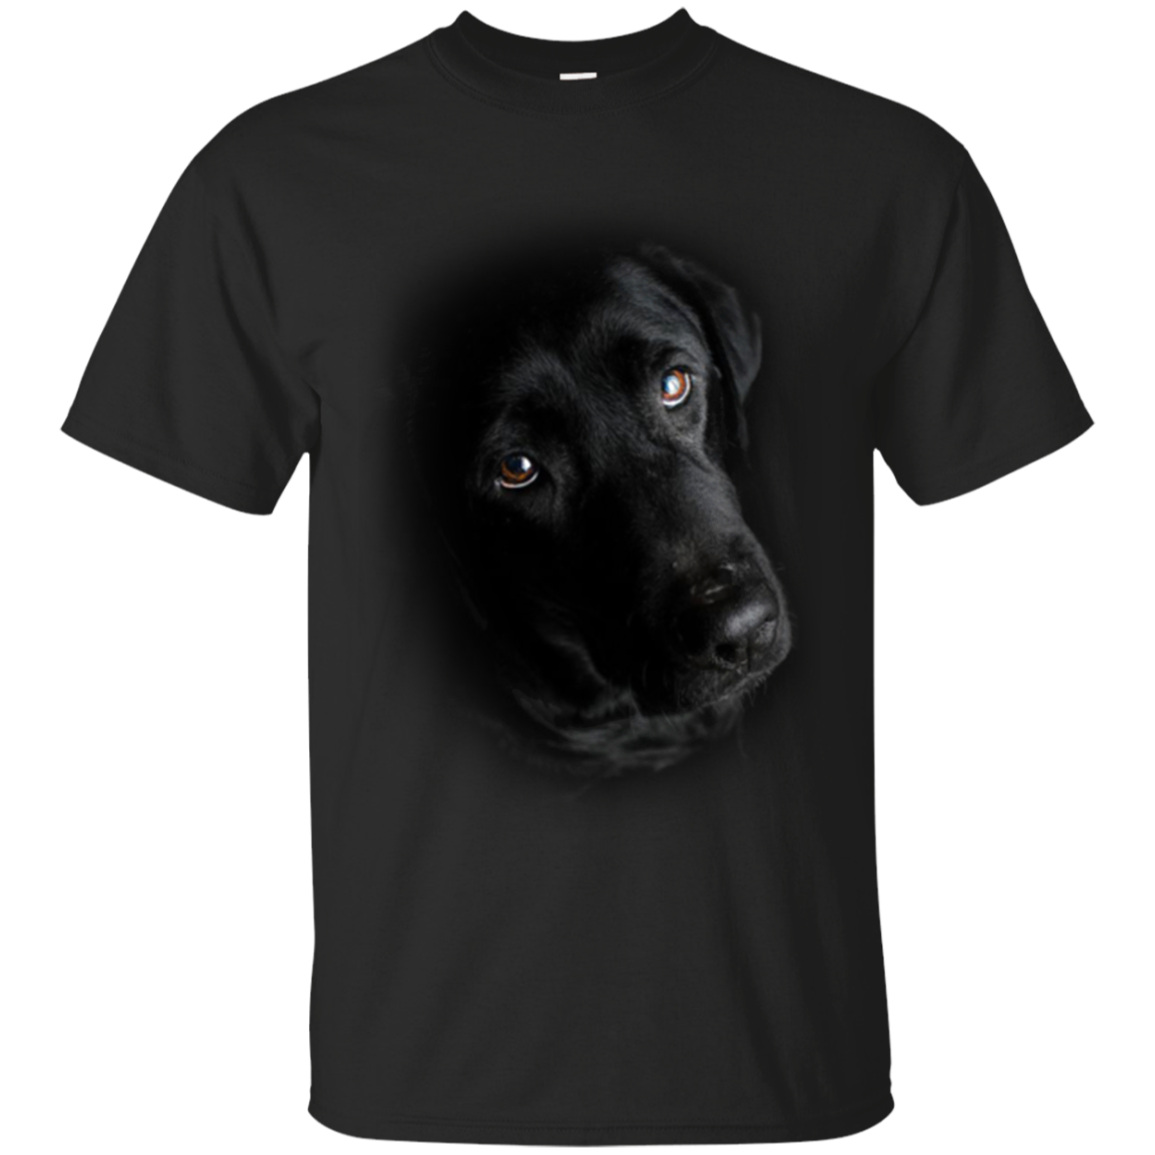 Black Labrador Shirts